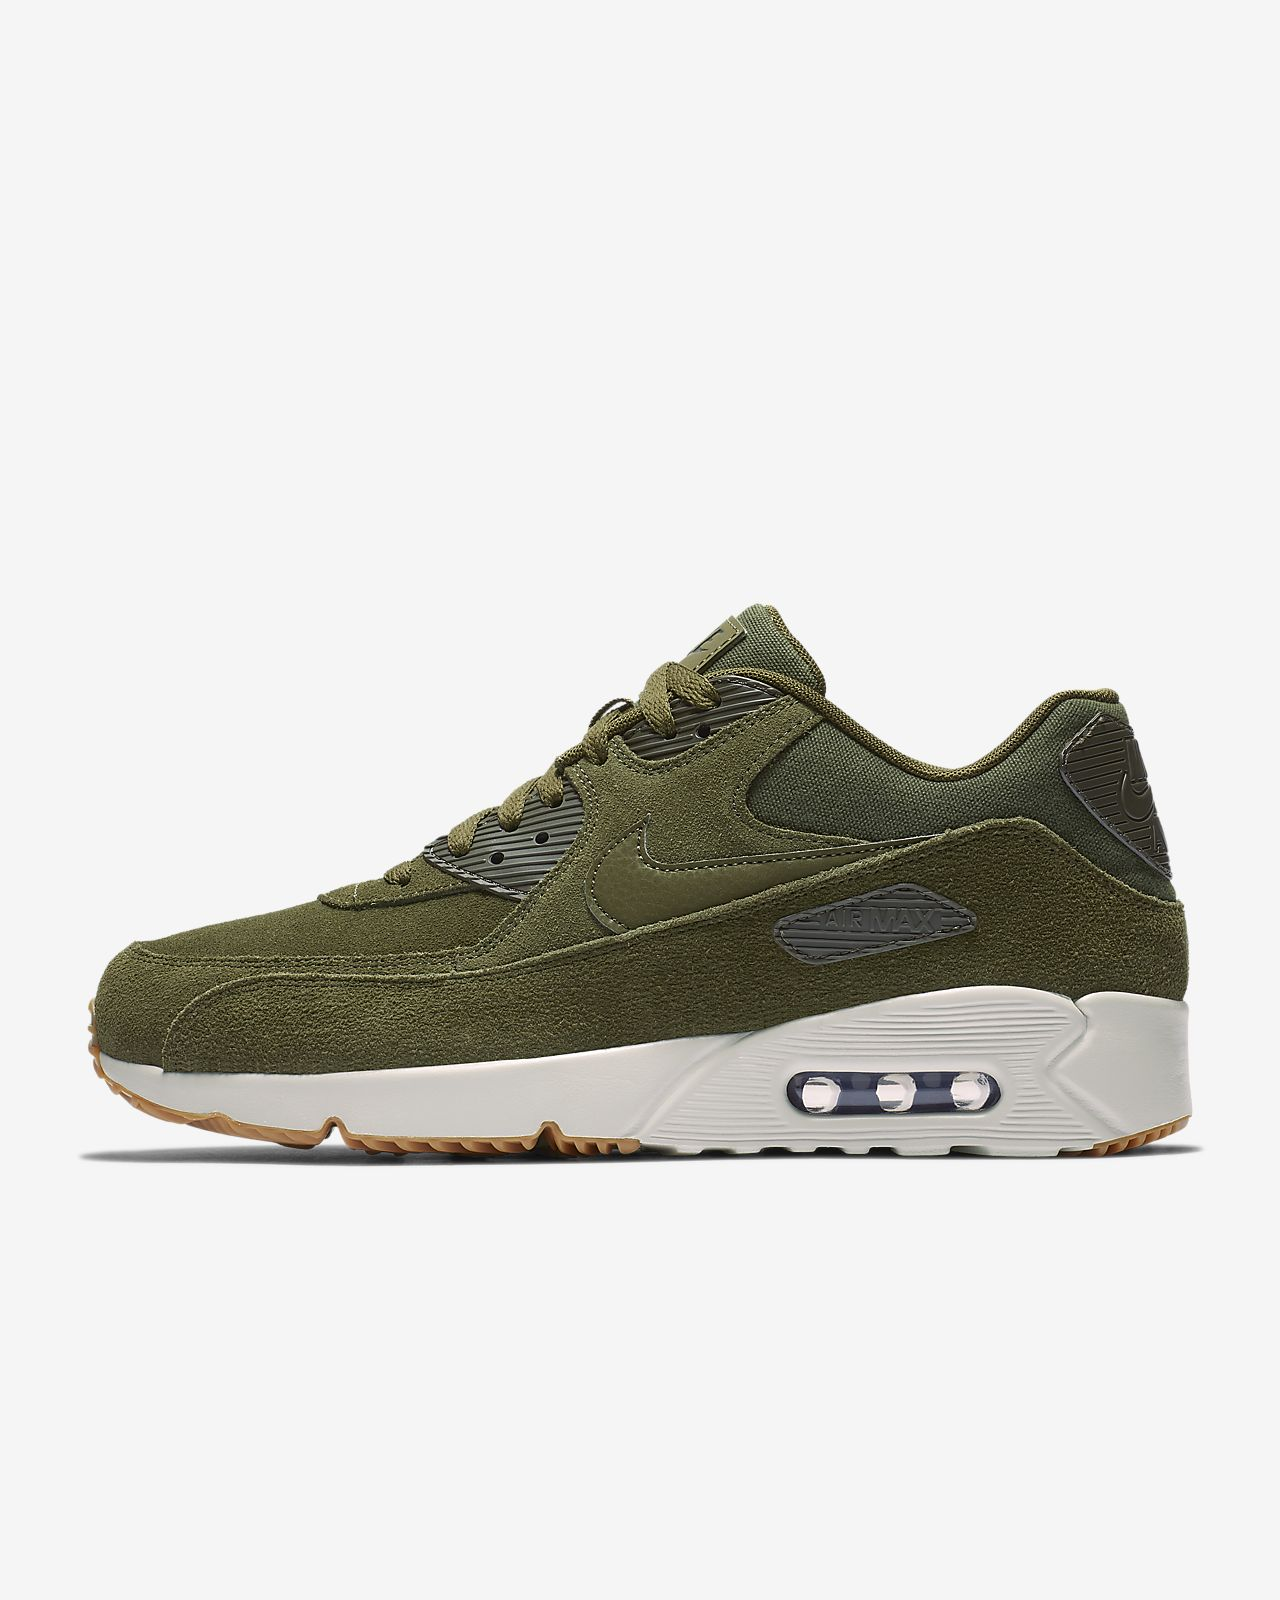 wholesale dealer 6a8f0 61d1b ... Nike Air Max 90 Ultra 2.0 Men s Shoe